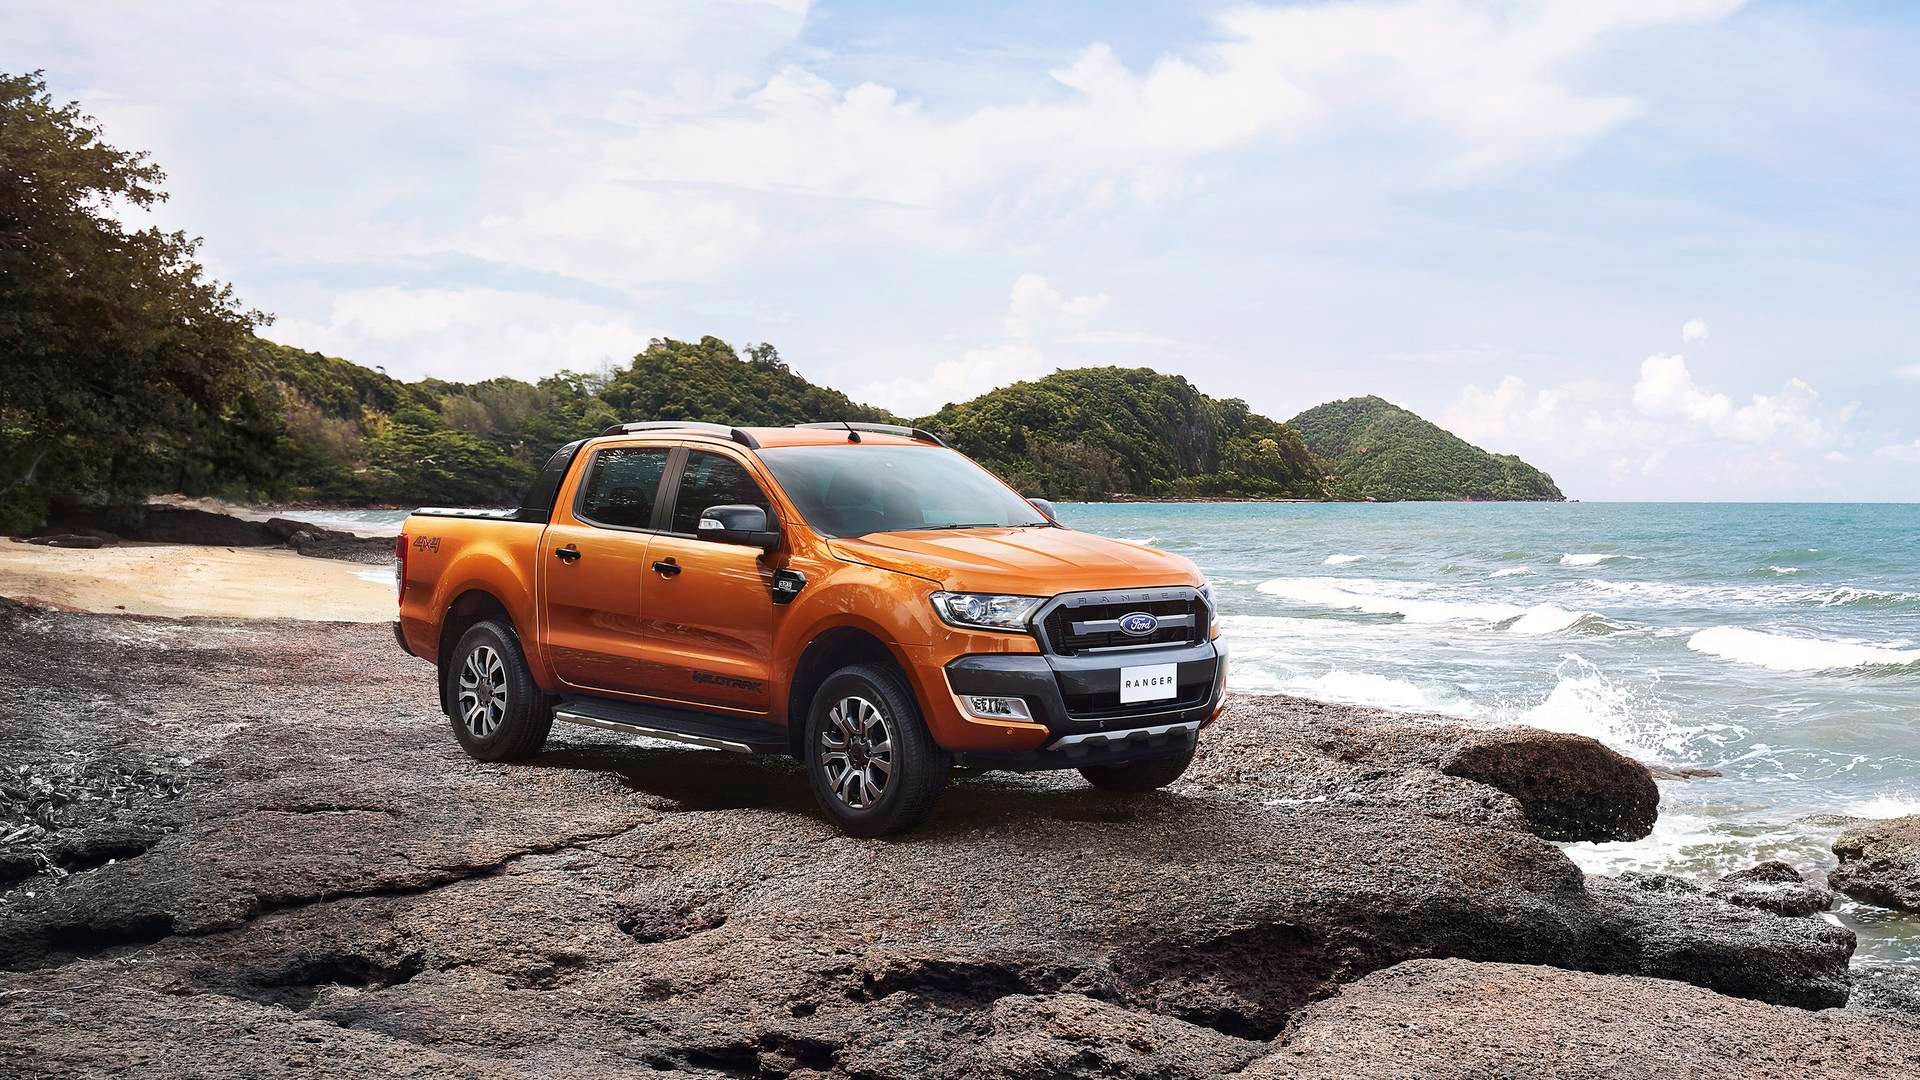 1920x1080 - Ford Ranger Wallpapers 4